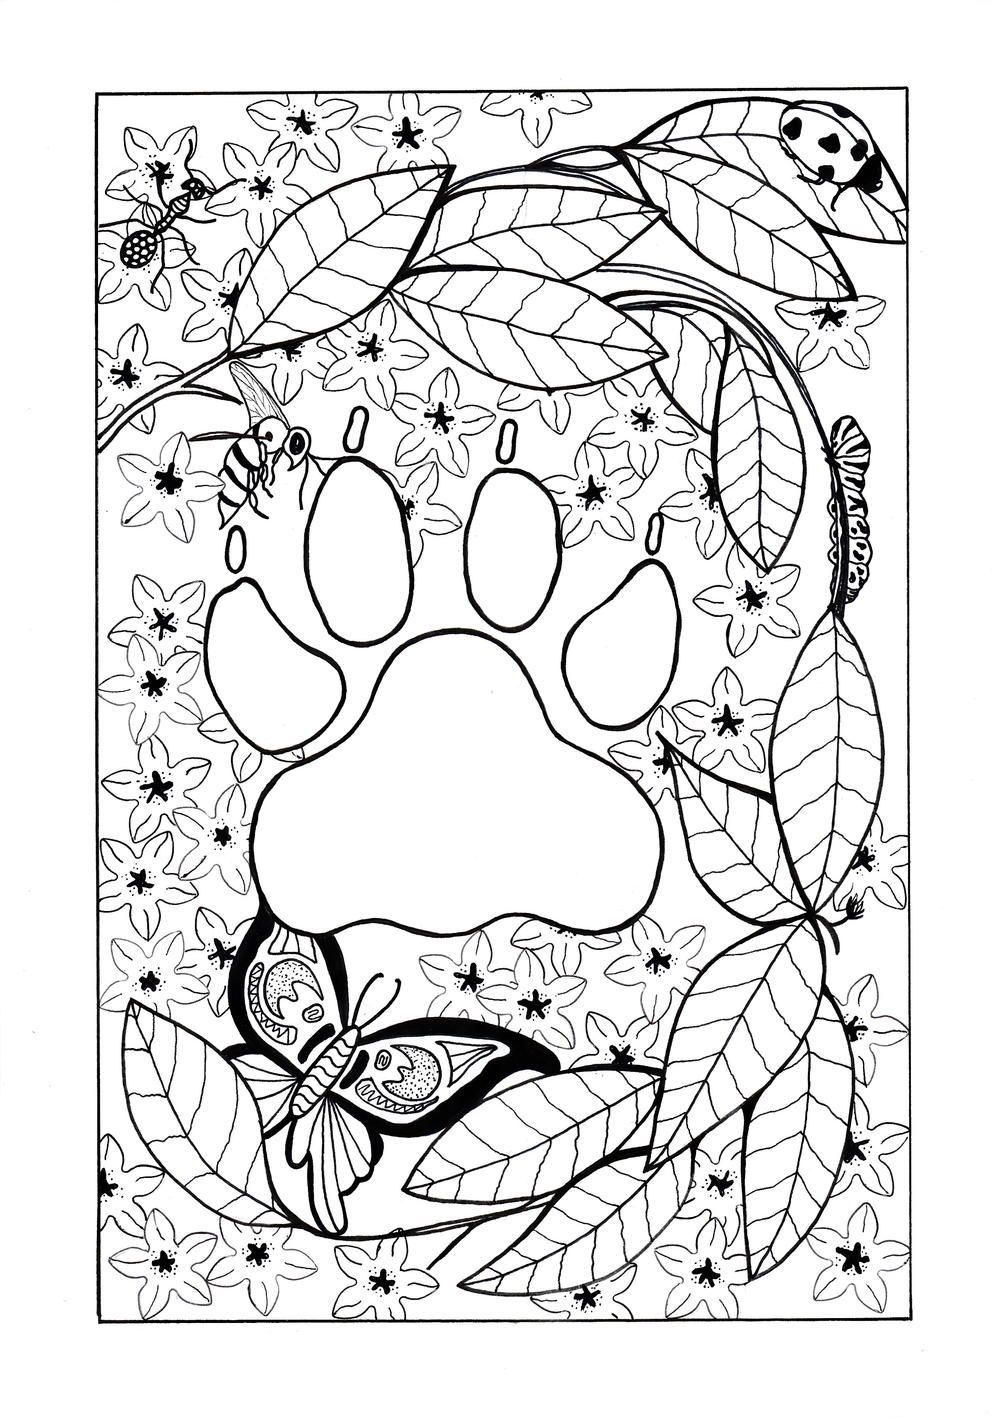 Be transported to the African continent when you color this FREE adult  coloring page.